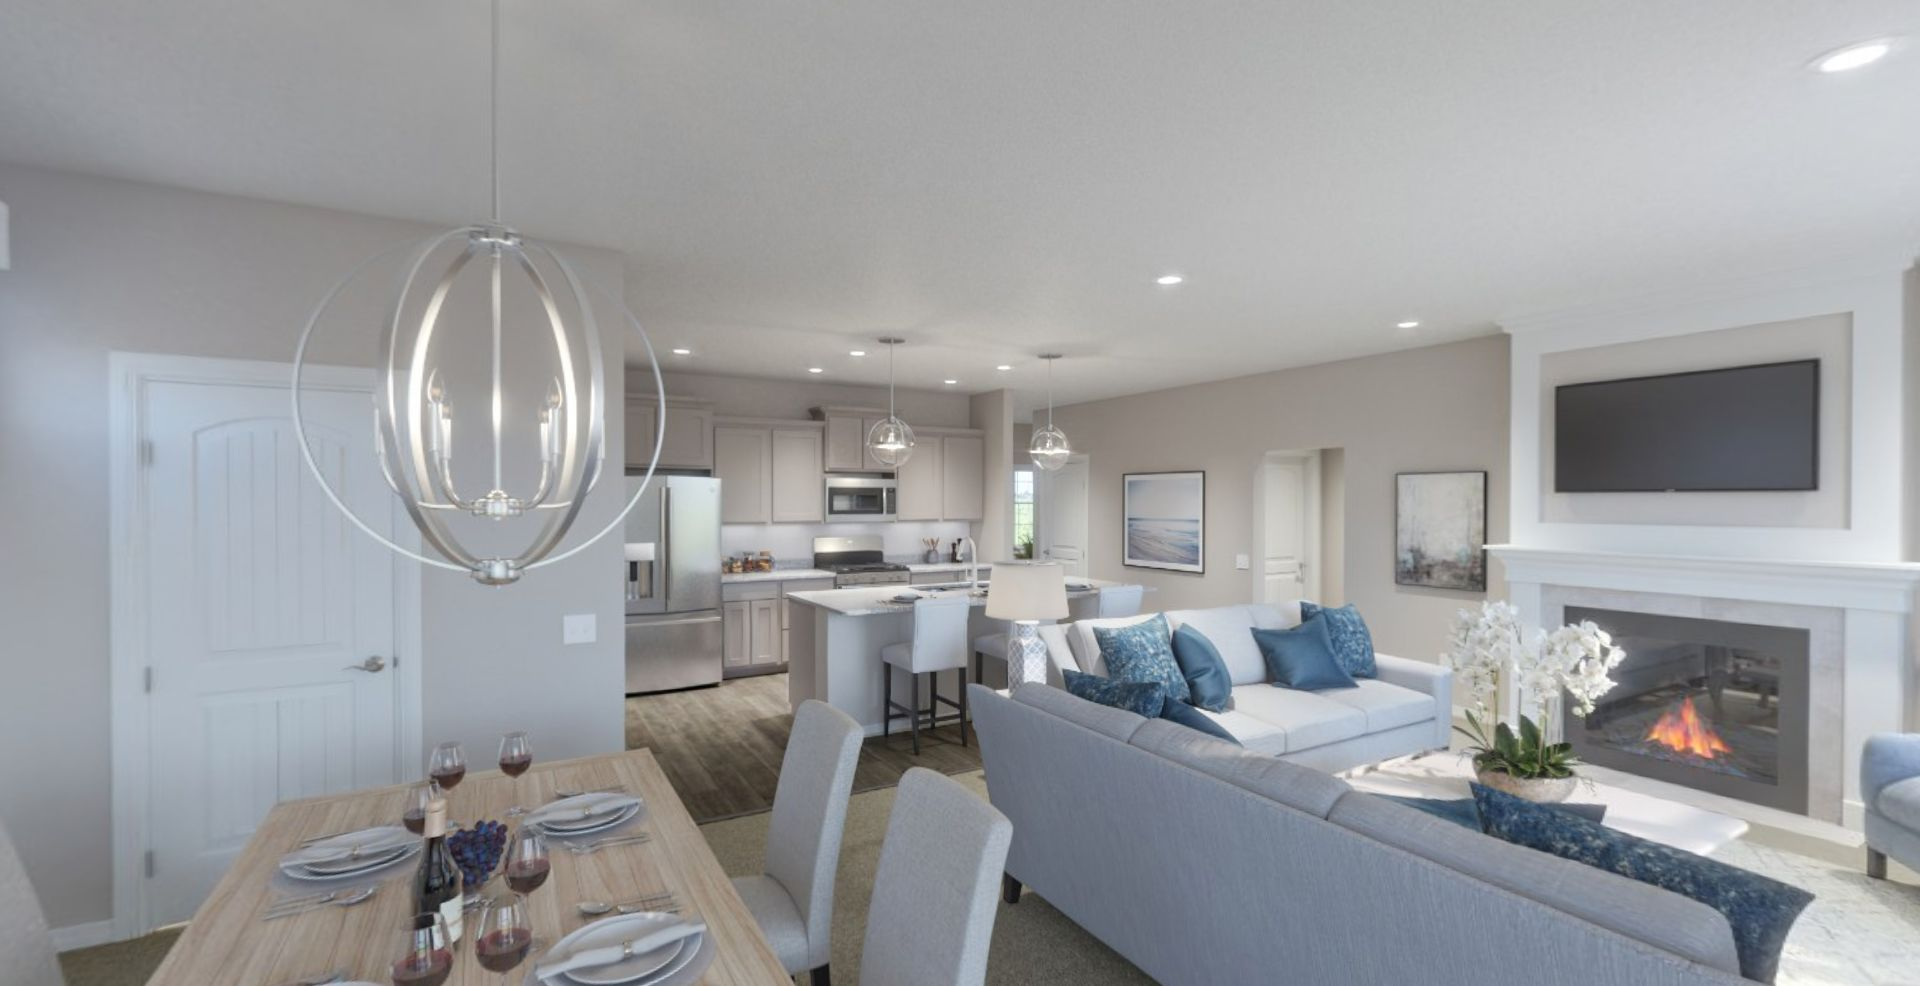 Living Area featured in the Adagio By Olthof Homes in Indianapolis, IN